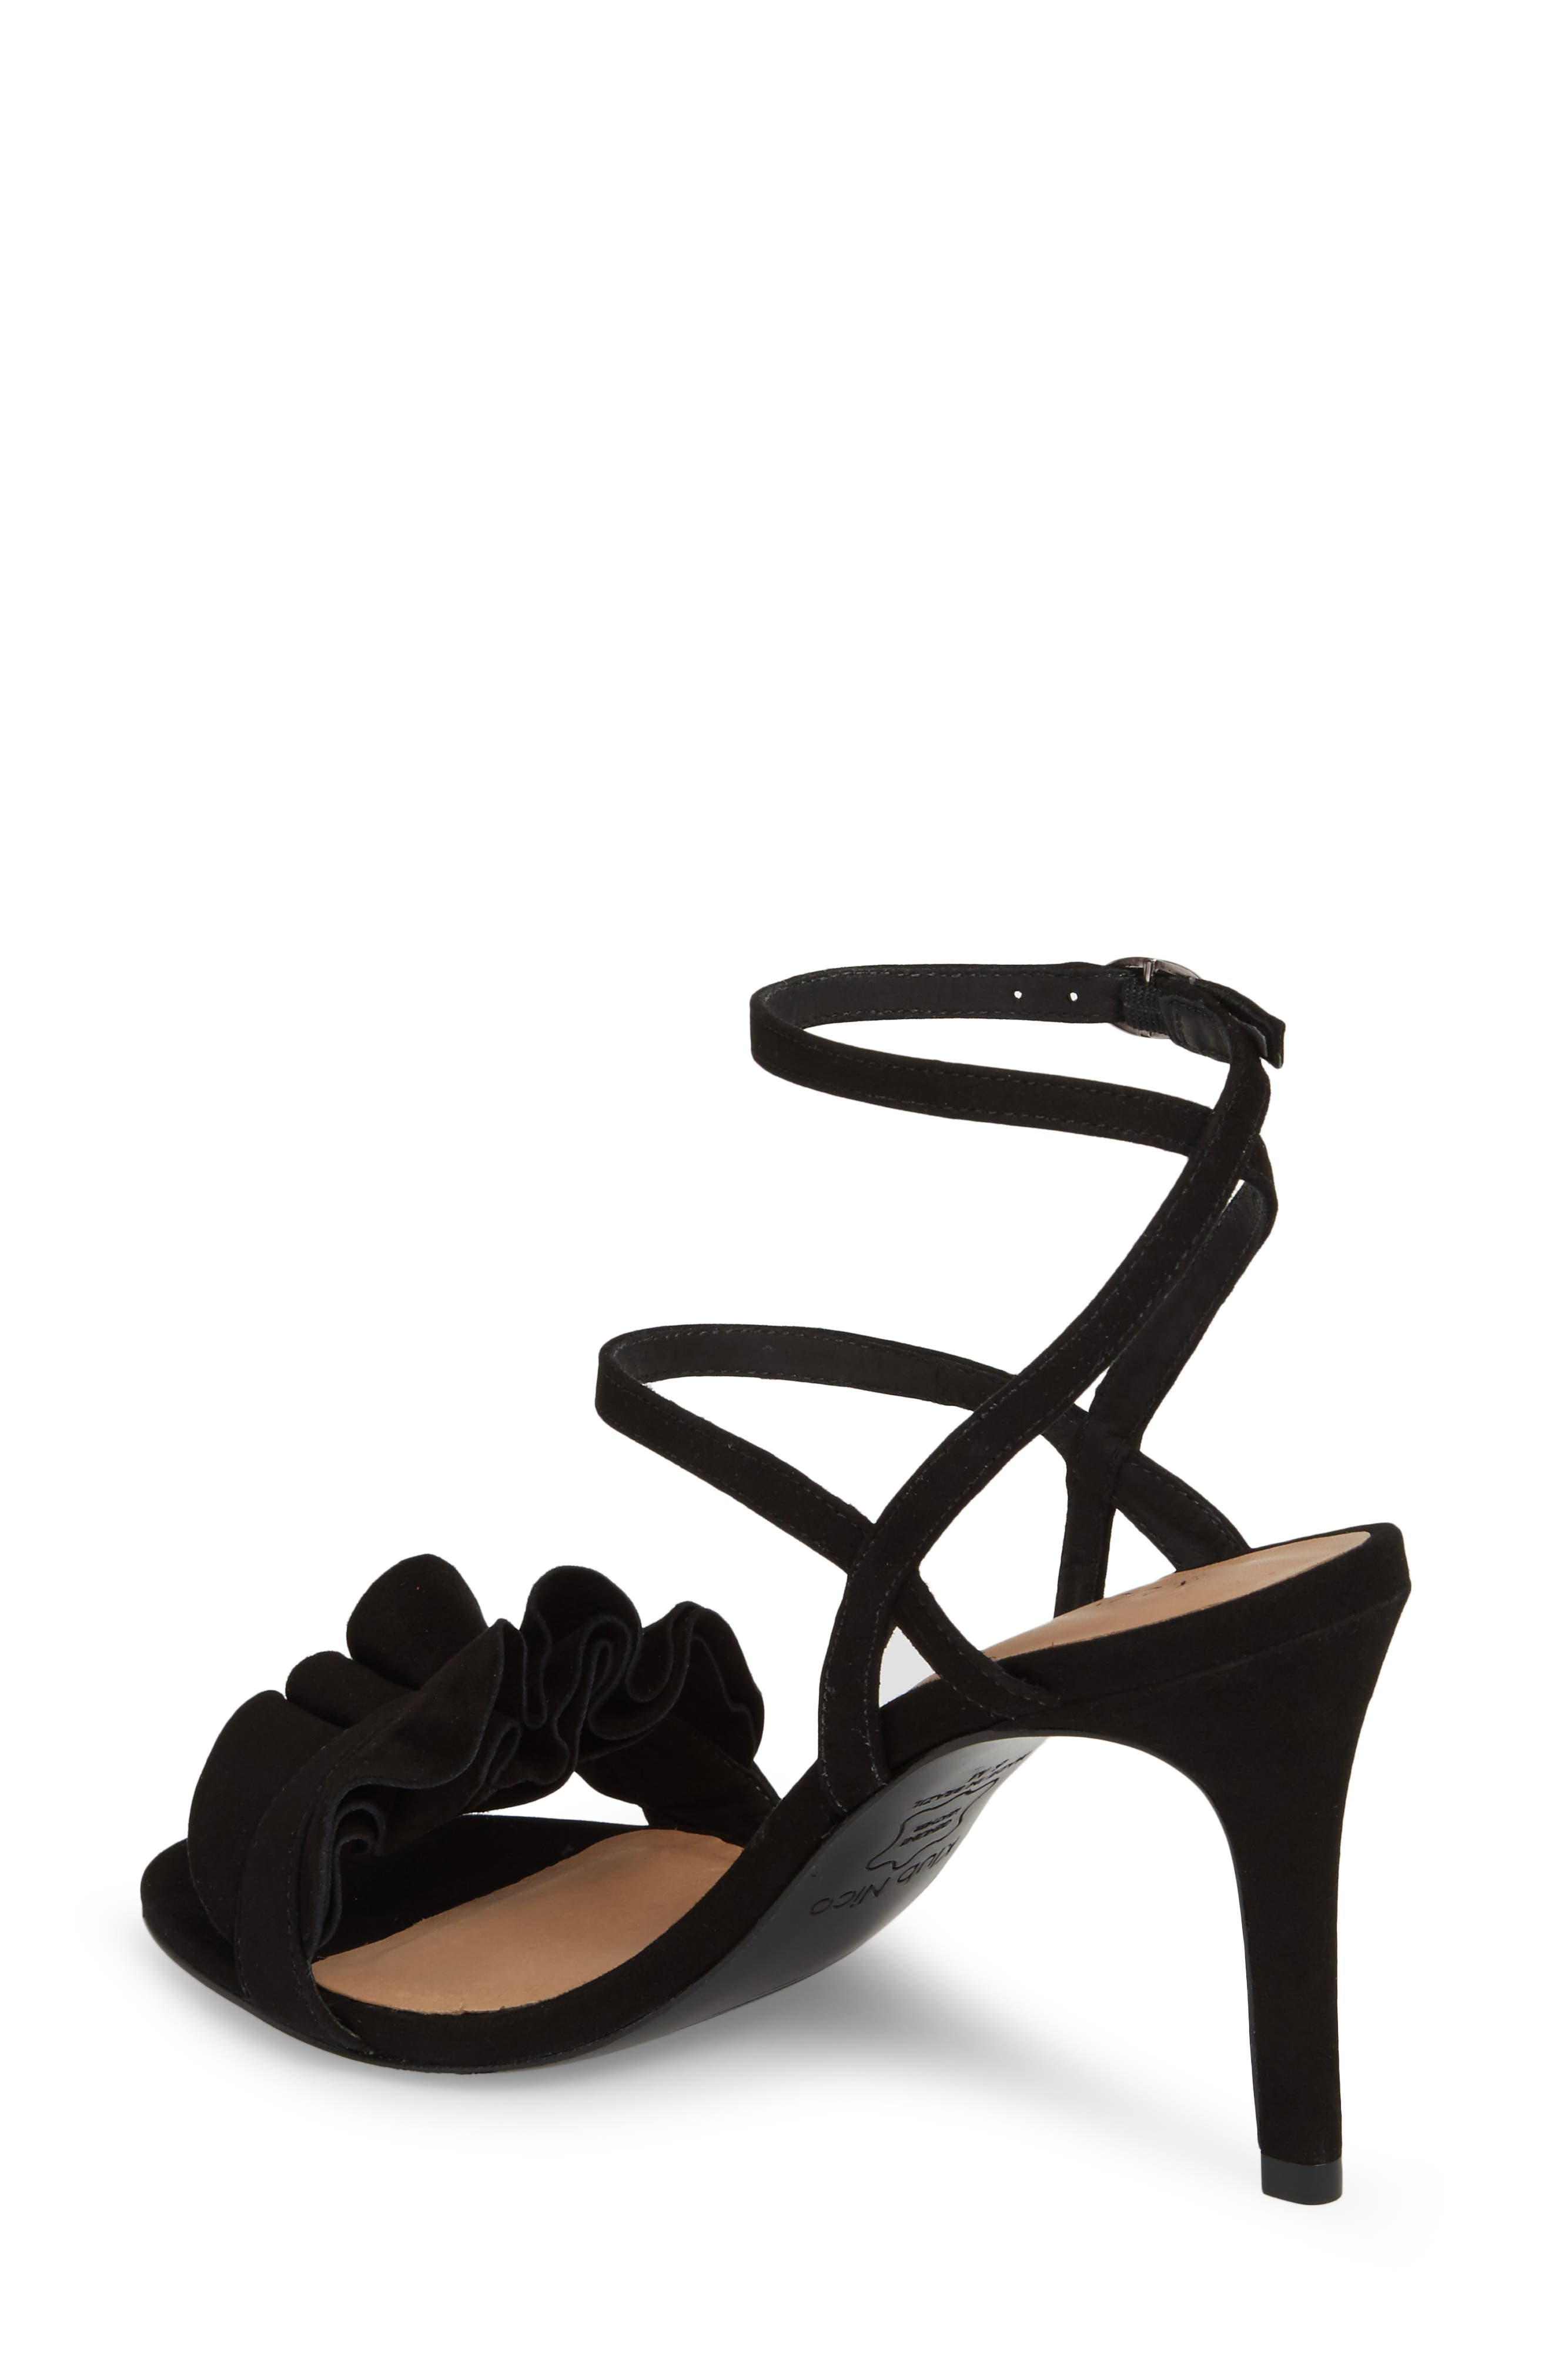 Ansley Sandal,                             Alternate thumbnail 2, color,                             BLACK SUEDE